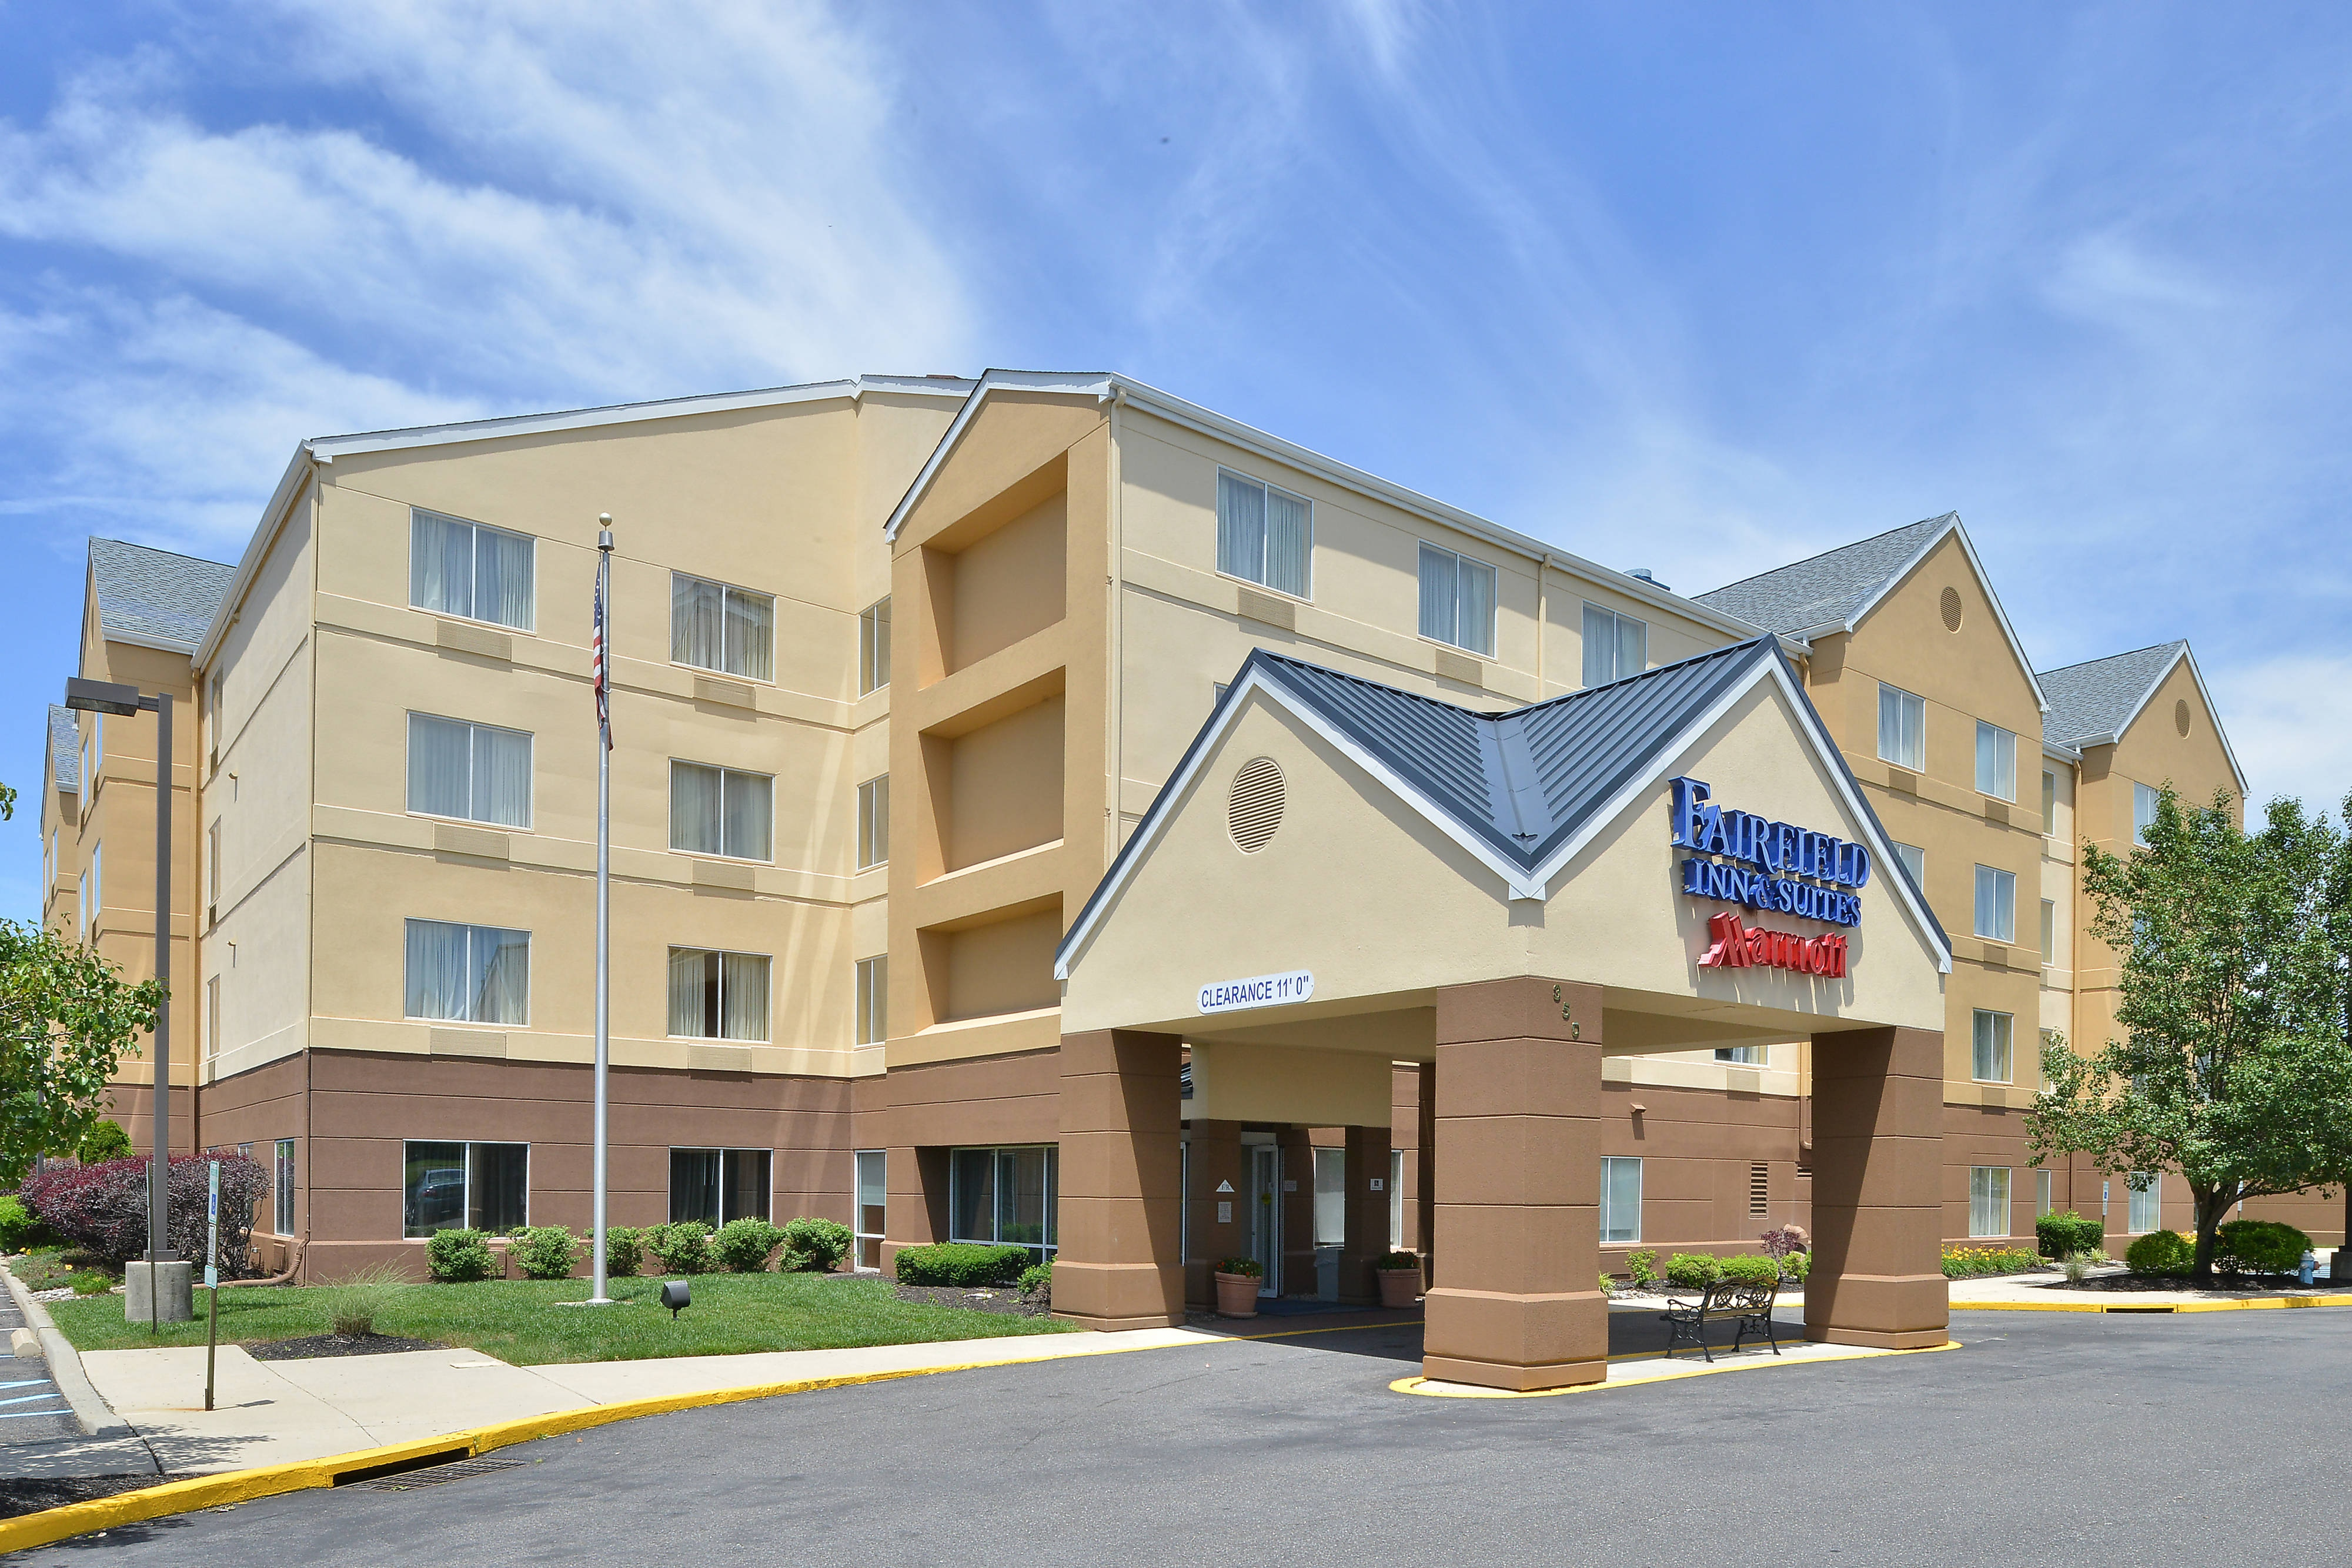 Our Mount Laurel NJ Hotel